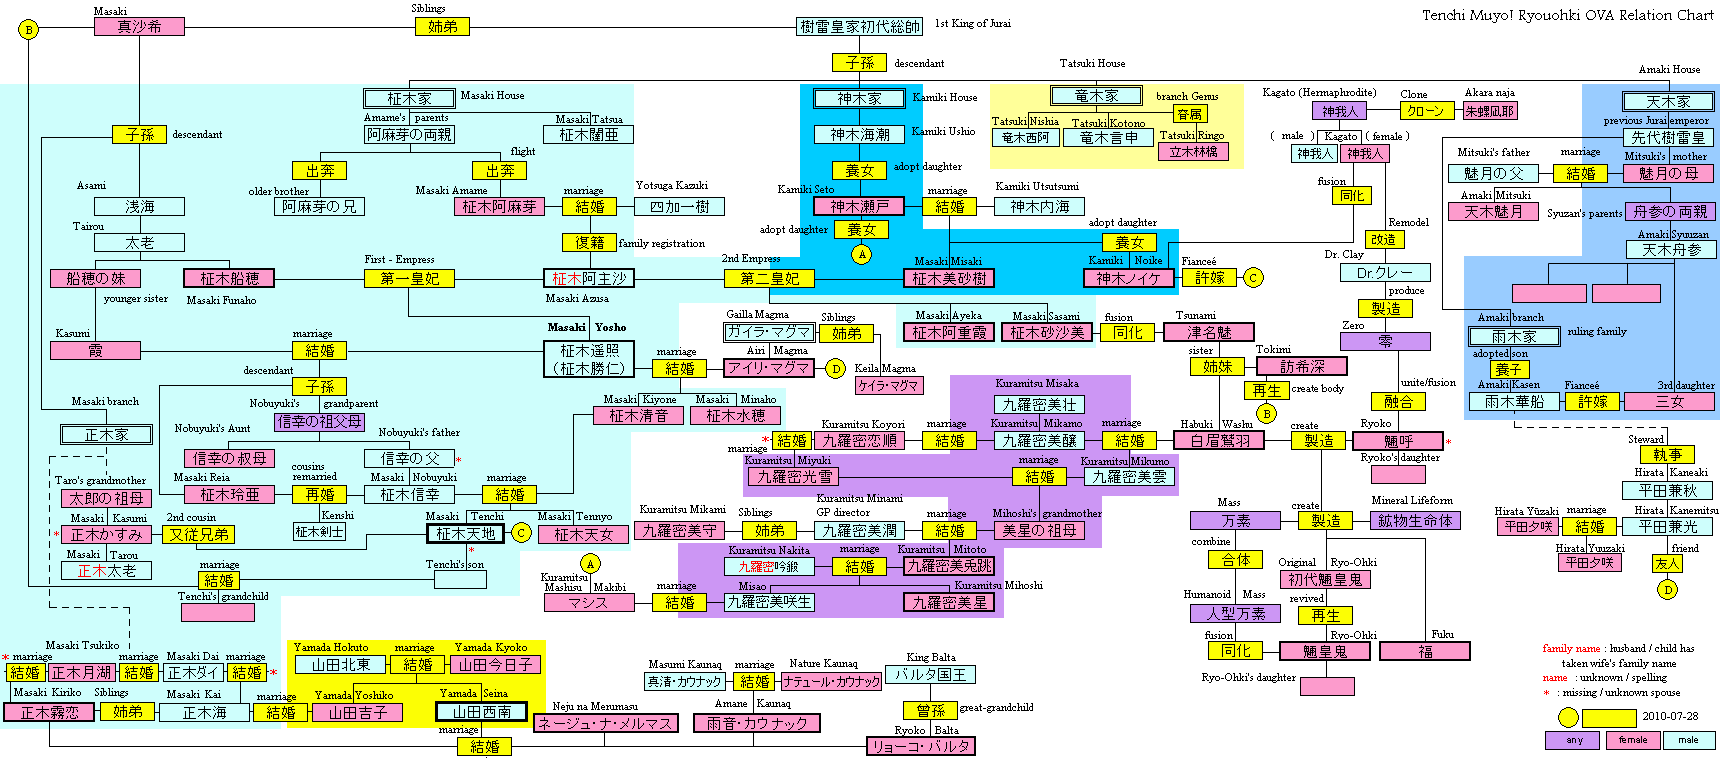 Character relationship chart template